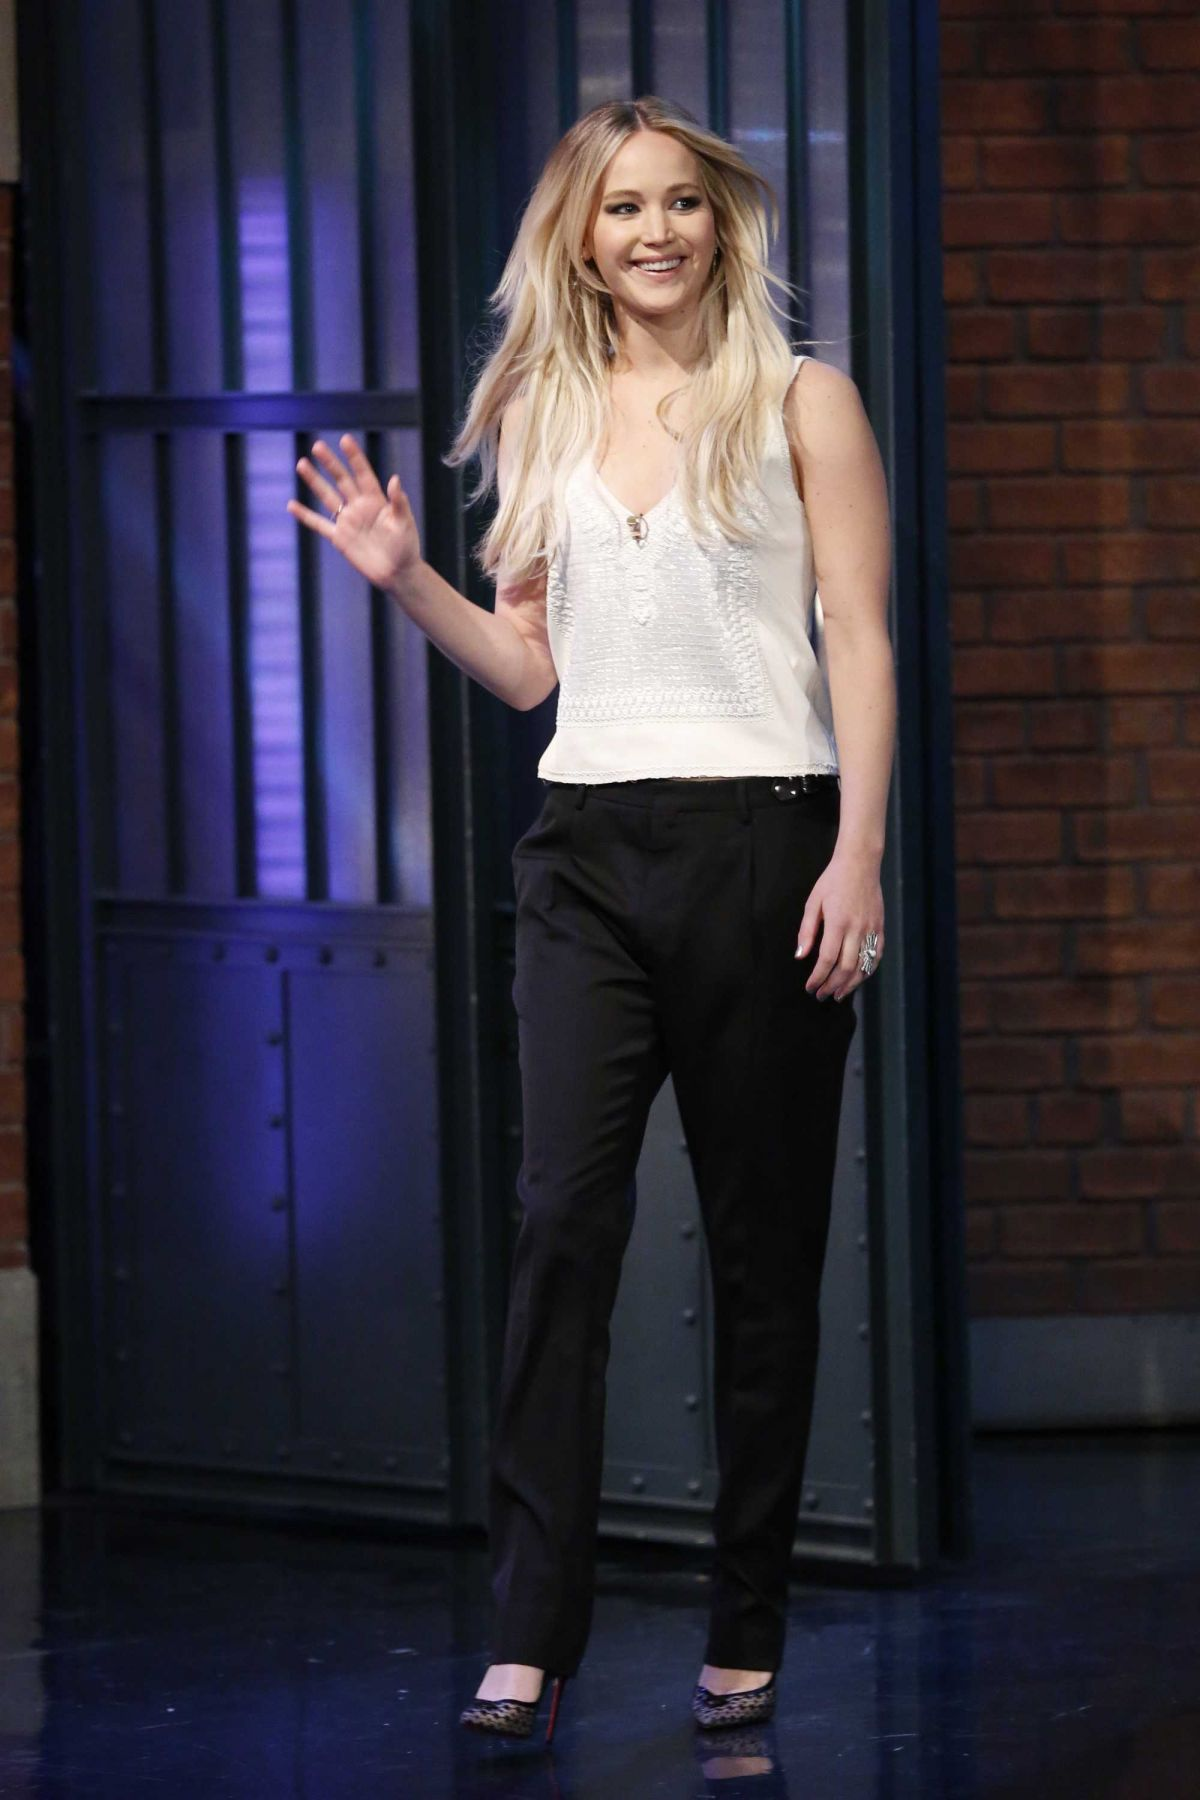 Jennifer Lawrence Hot Photos in Simple Outfit